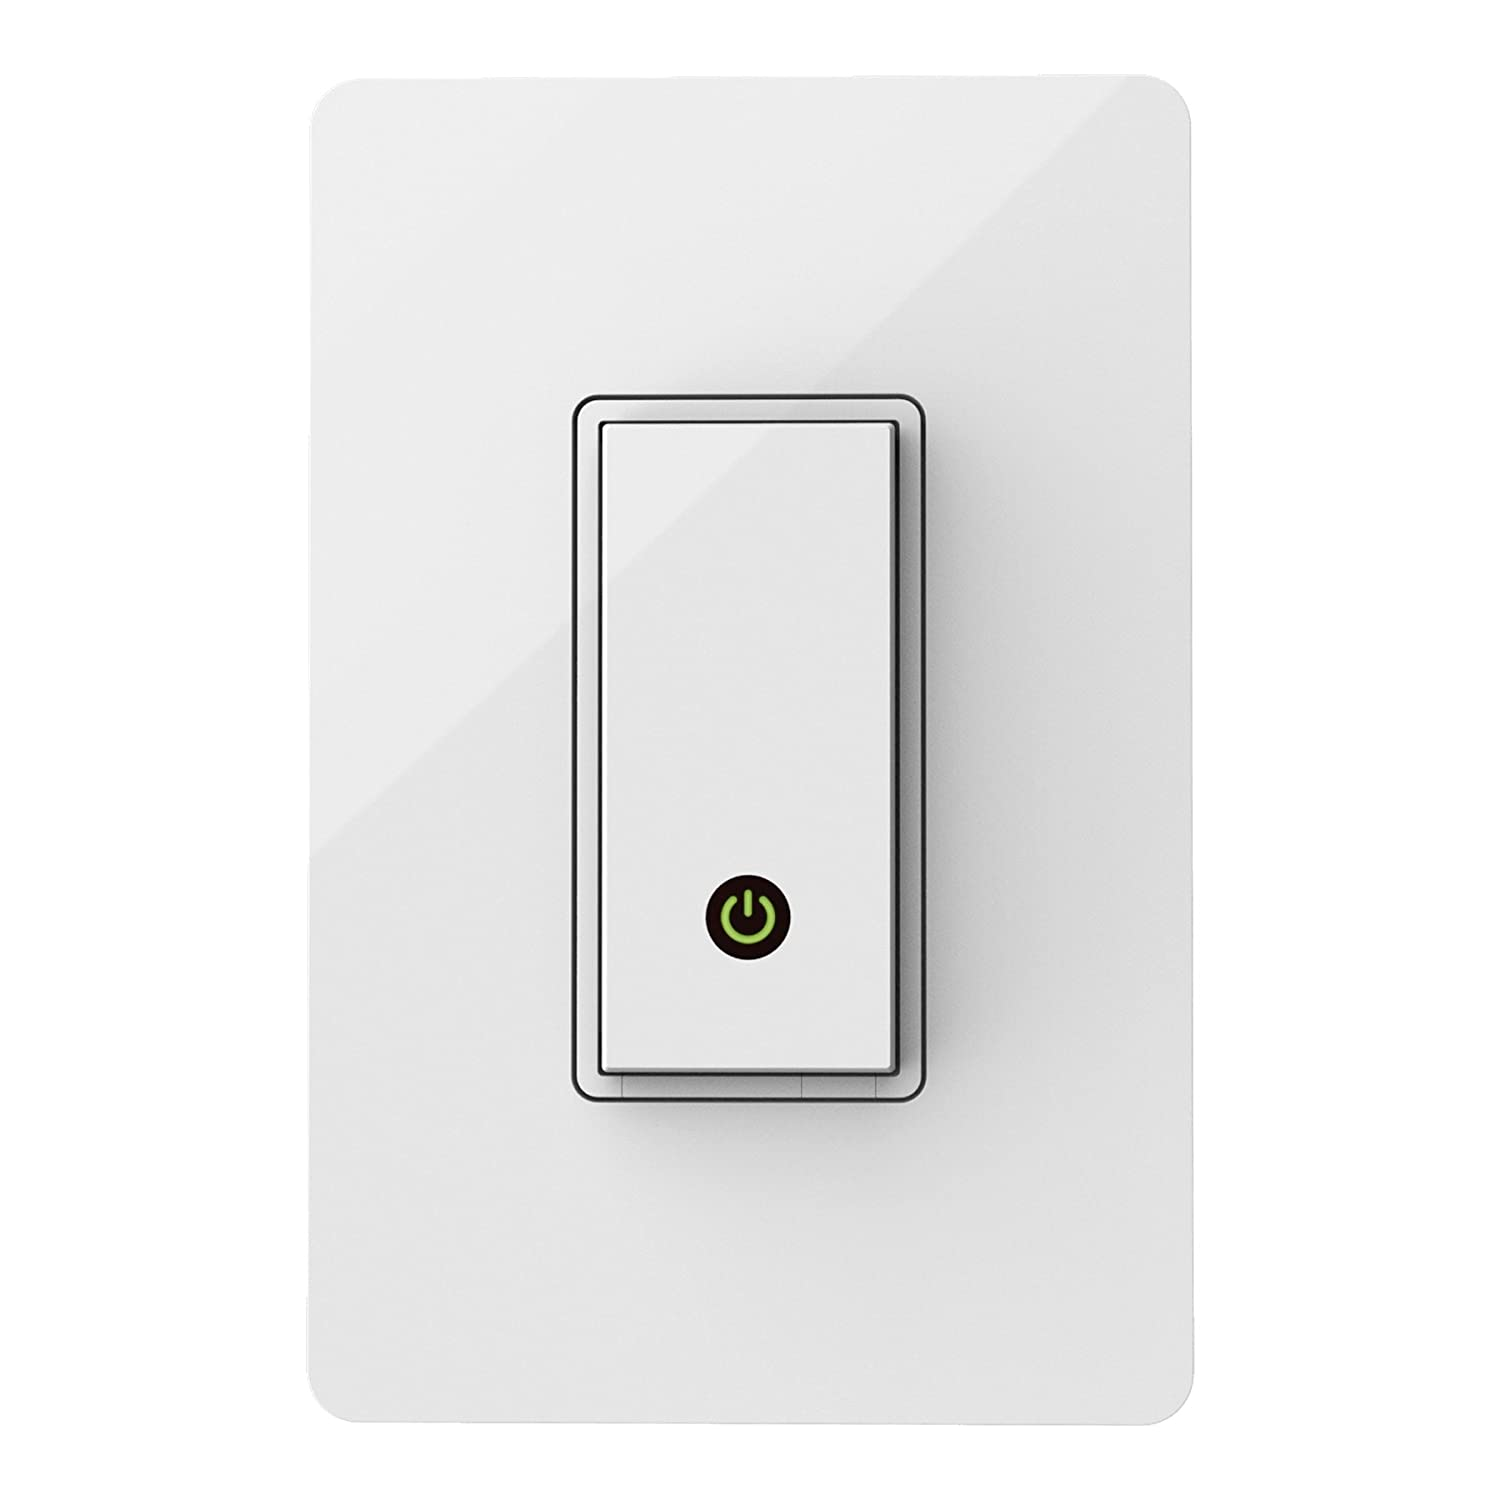 Wemo Switch, Wi-Fi Smart Plug